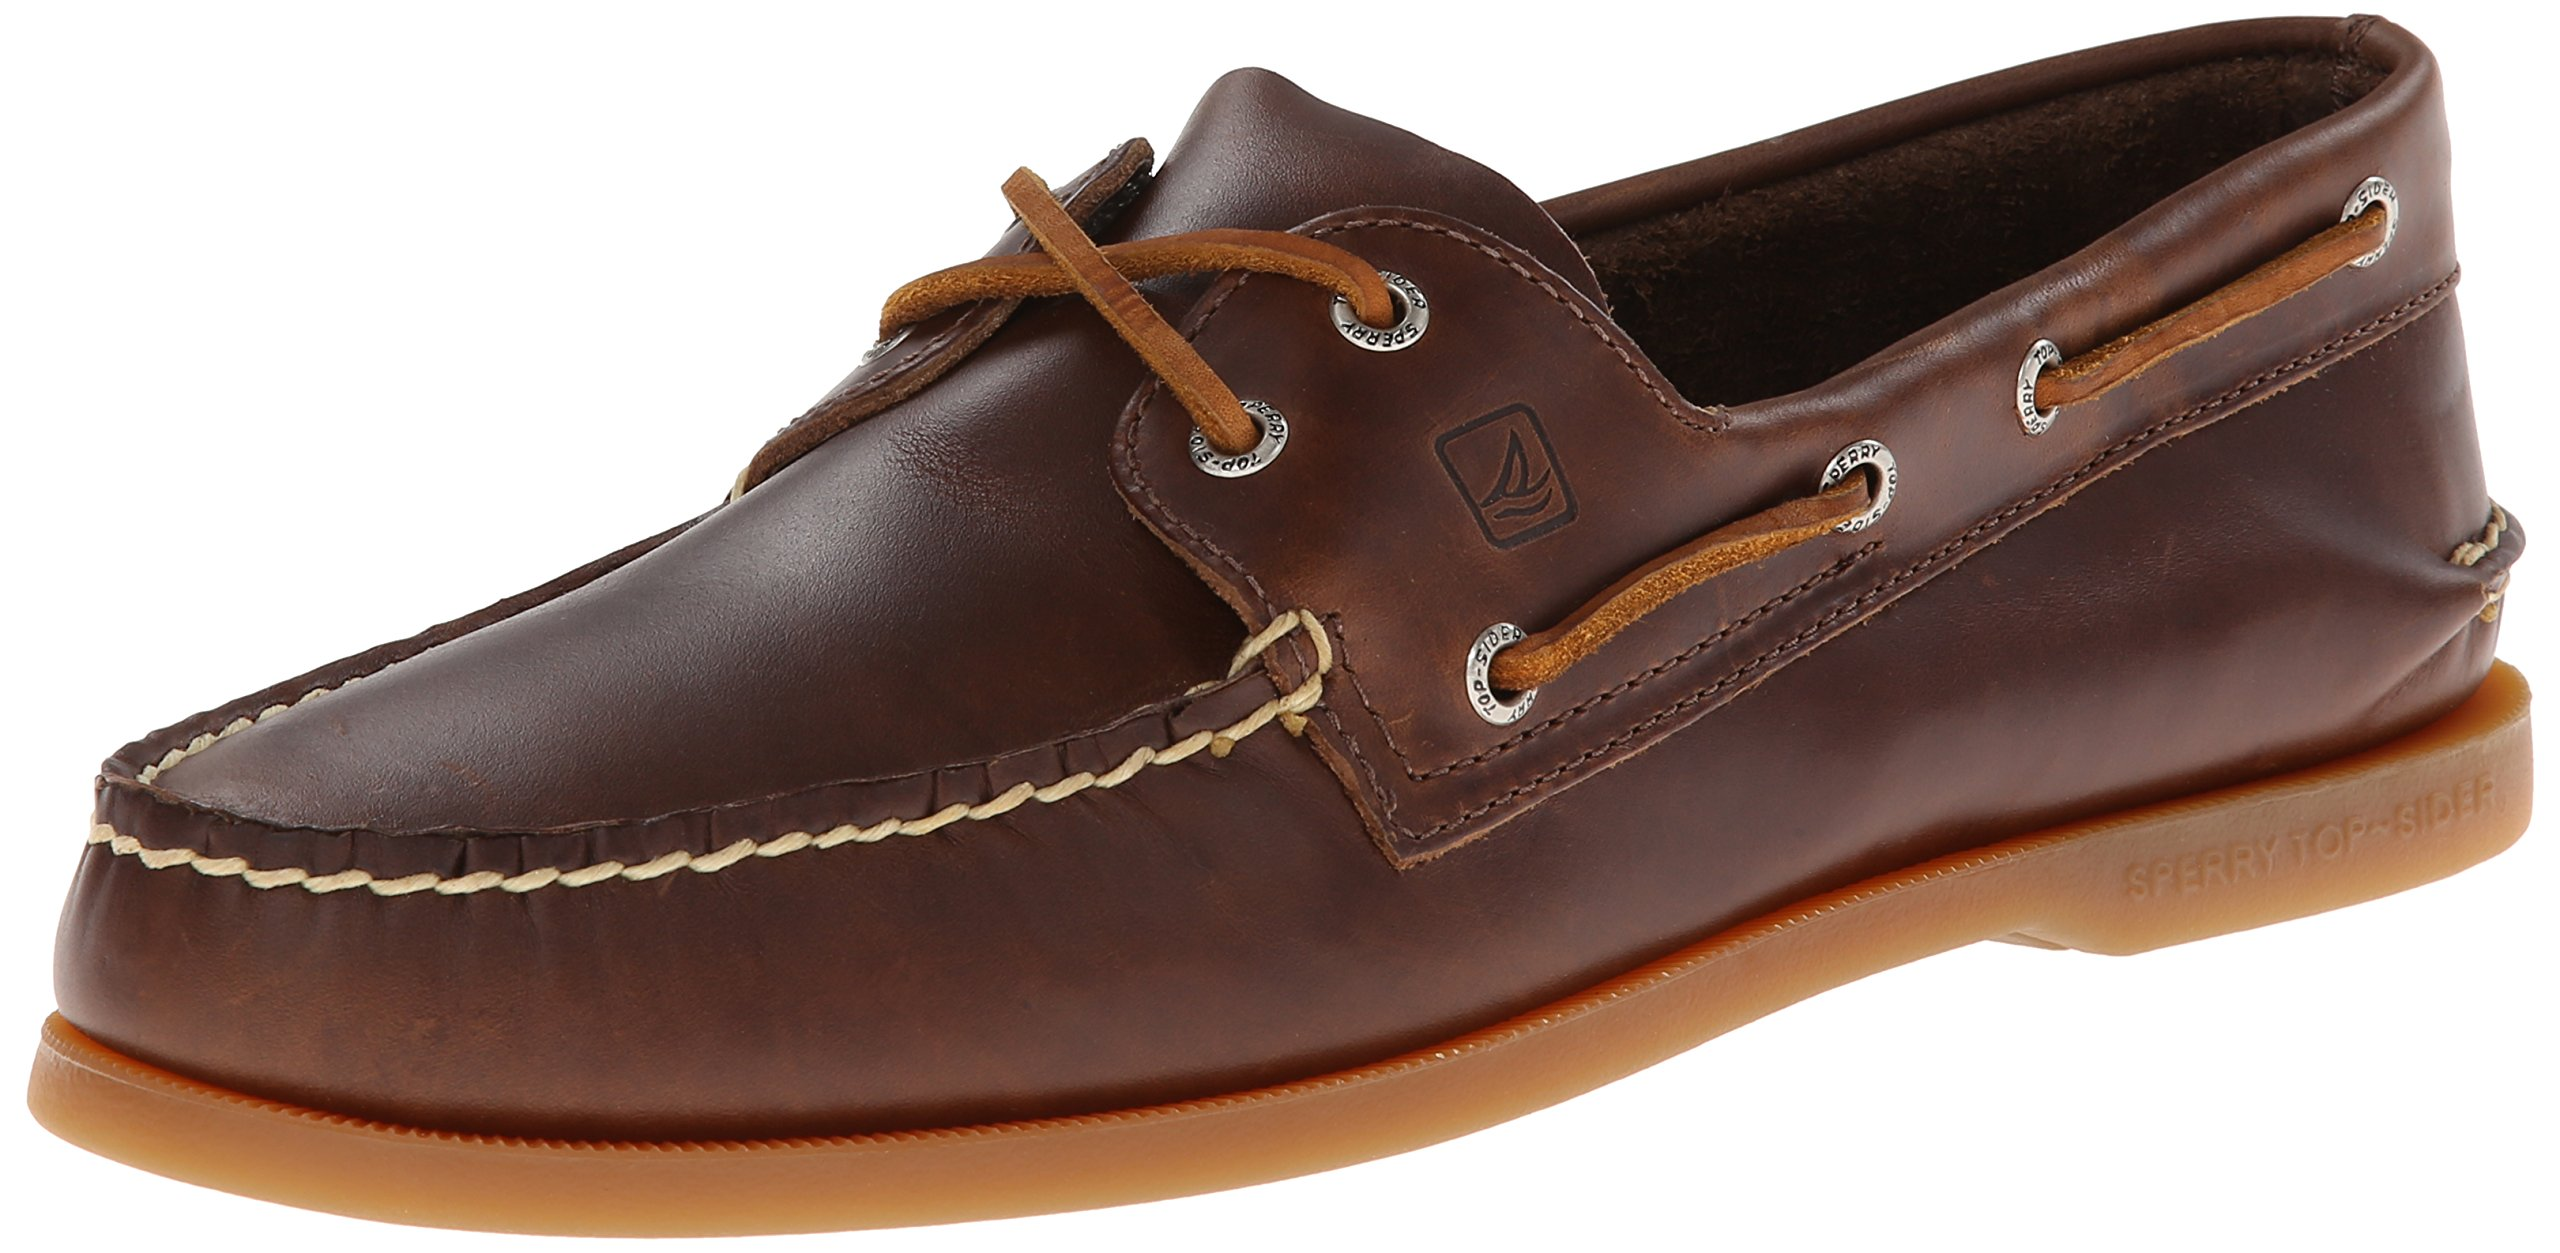 Sperry Top-Sider Men's Authentic Original Cyclone Boat Shoe